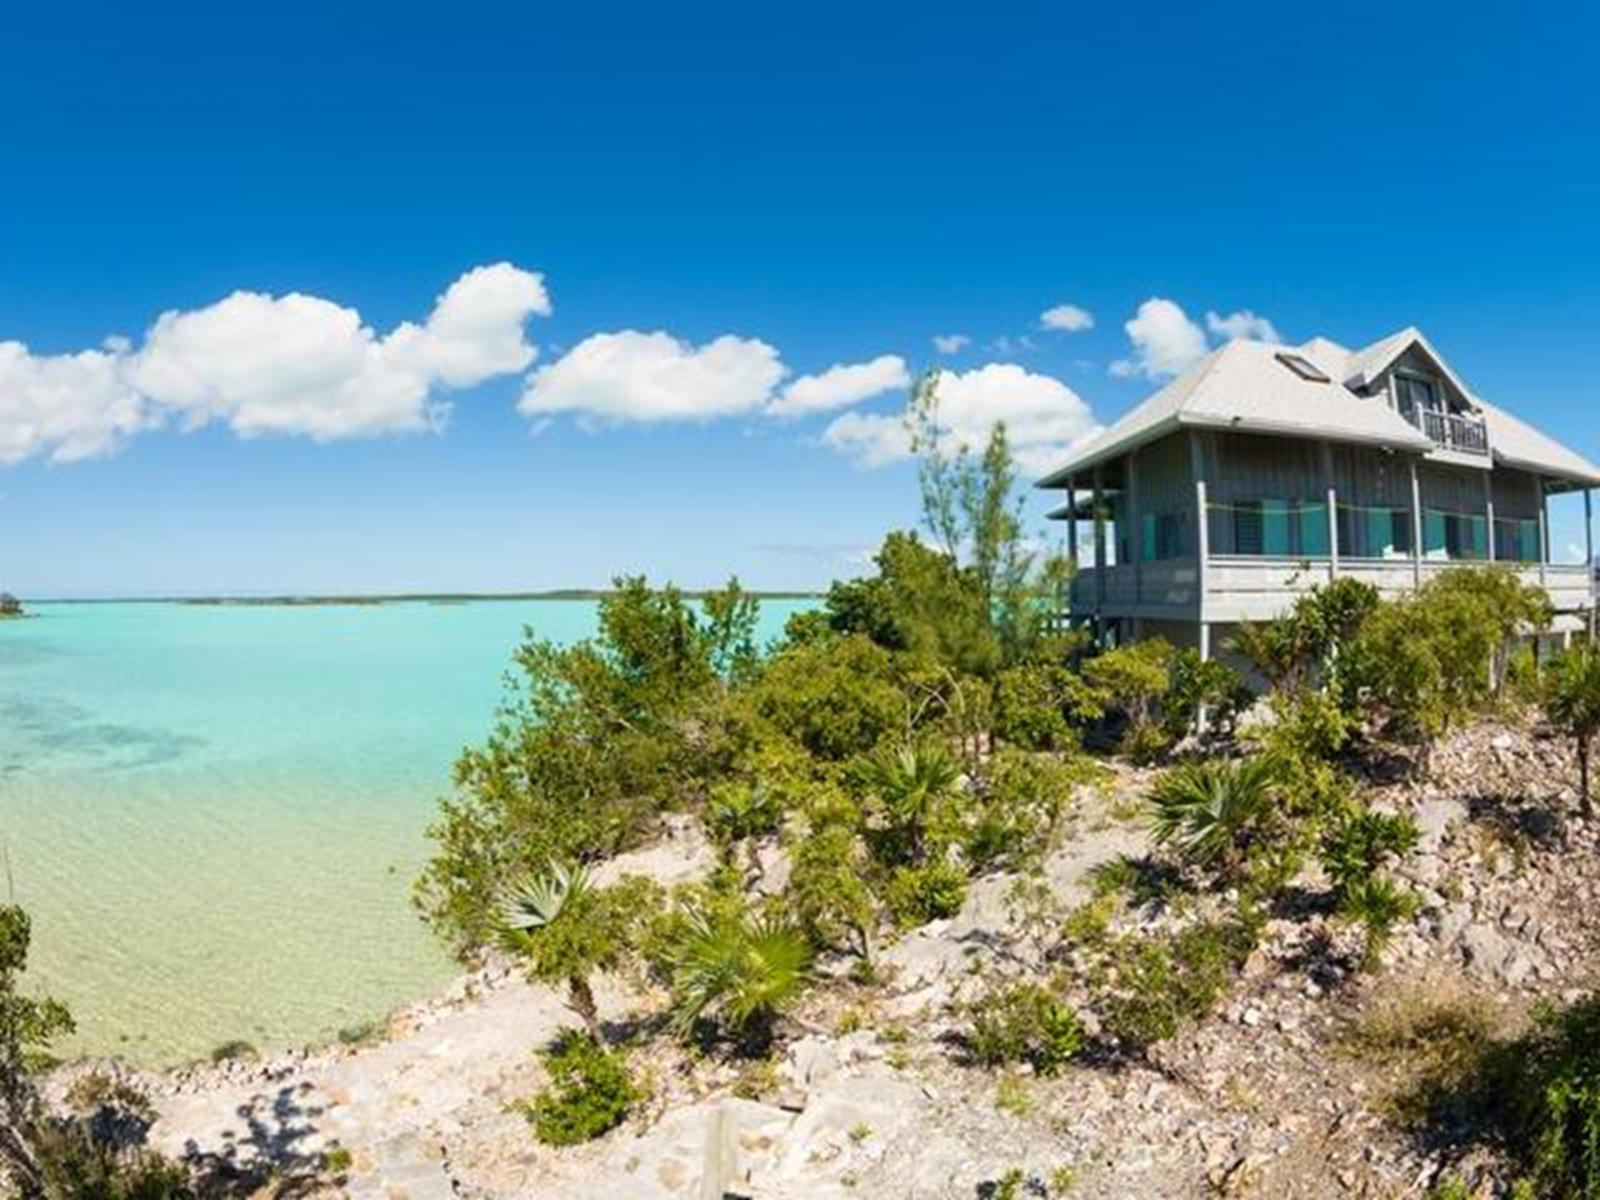 467 Chalk Sound Drive Out of NYC Sapodilla Bay Providenciales TKCA 1ZZ